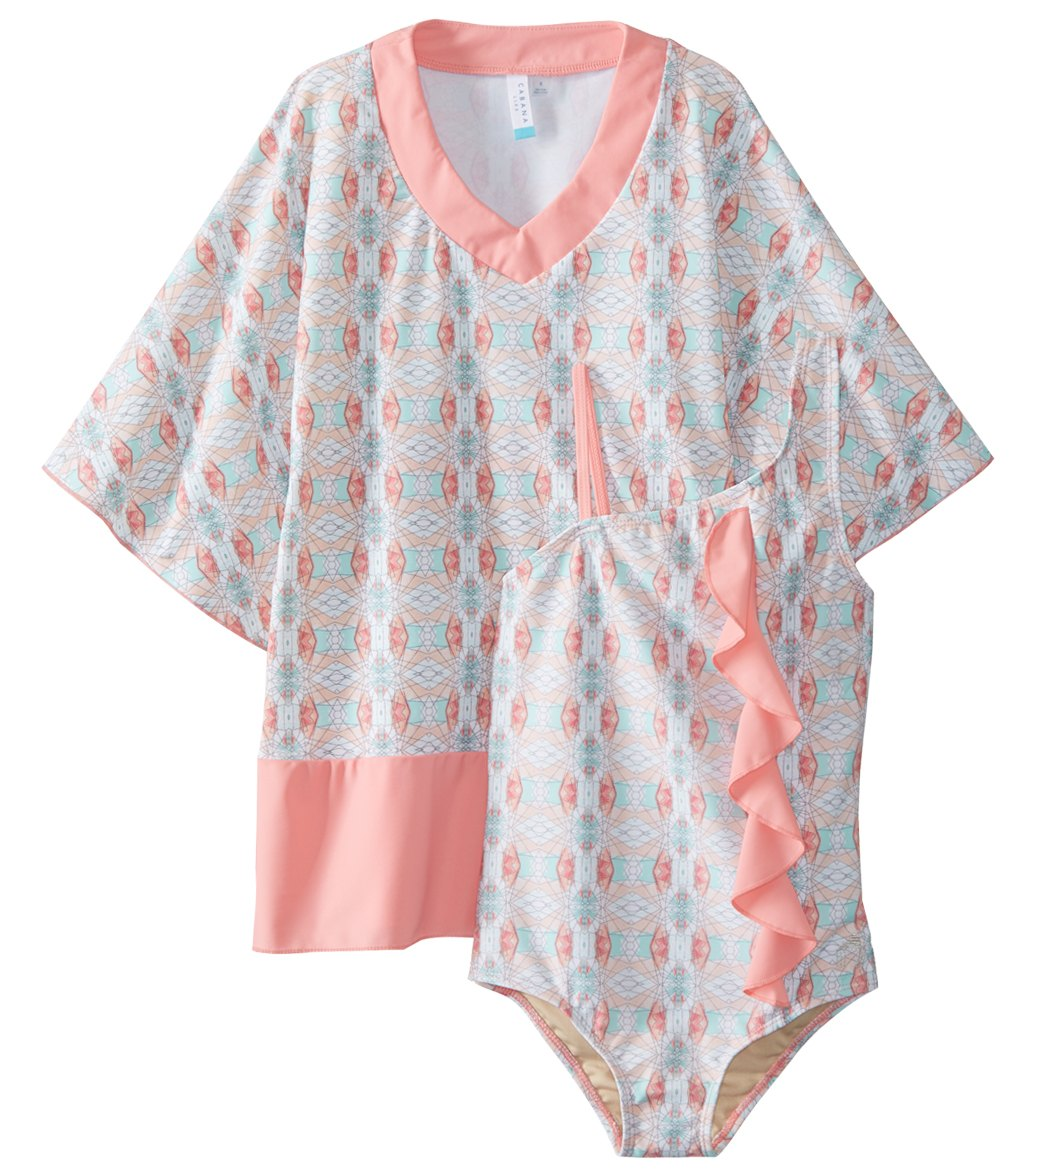 bad95cb028 Cabana Life Girls  Bunglo Beach Swimsuit and Cover Up Set (Little Kid) at  SwimOutlet.com - Free Shipping